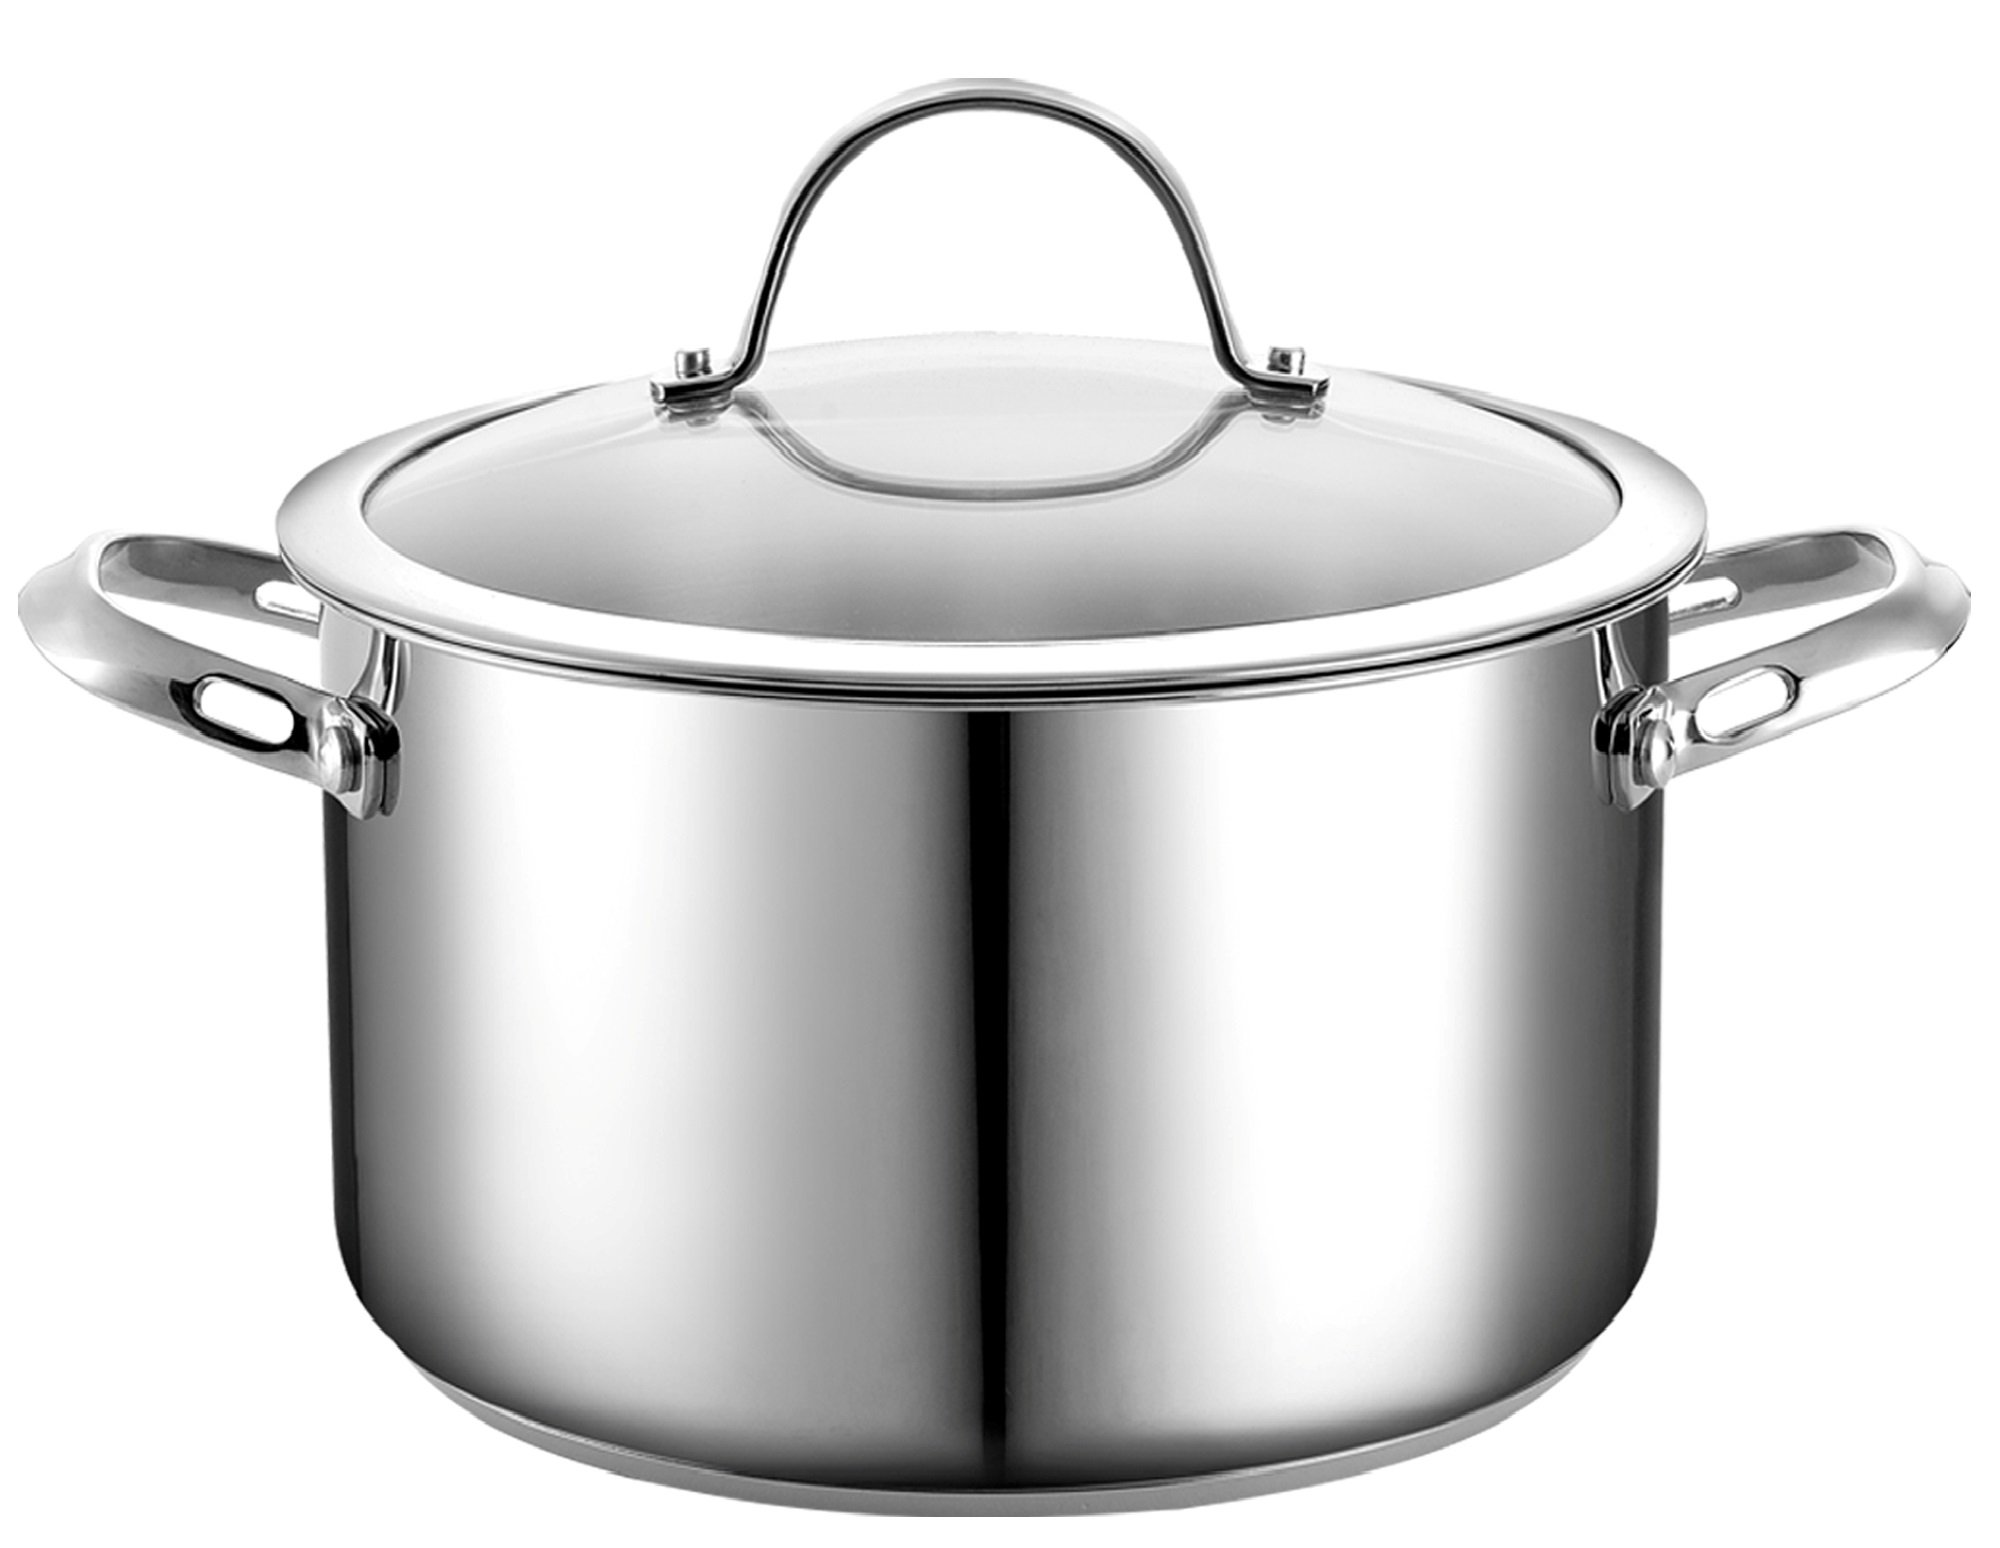 Cooks Standard 6-Quart Stainless Steel Stockpot with Lid by Cooks Standard (Image #5)